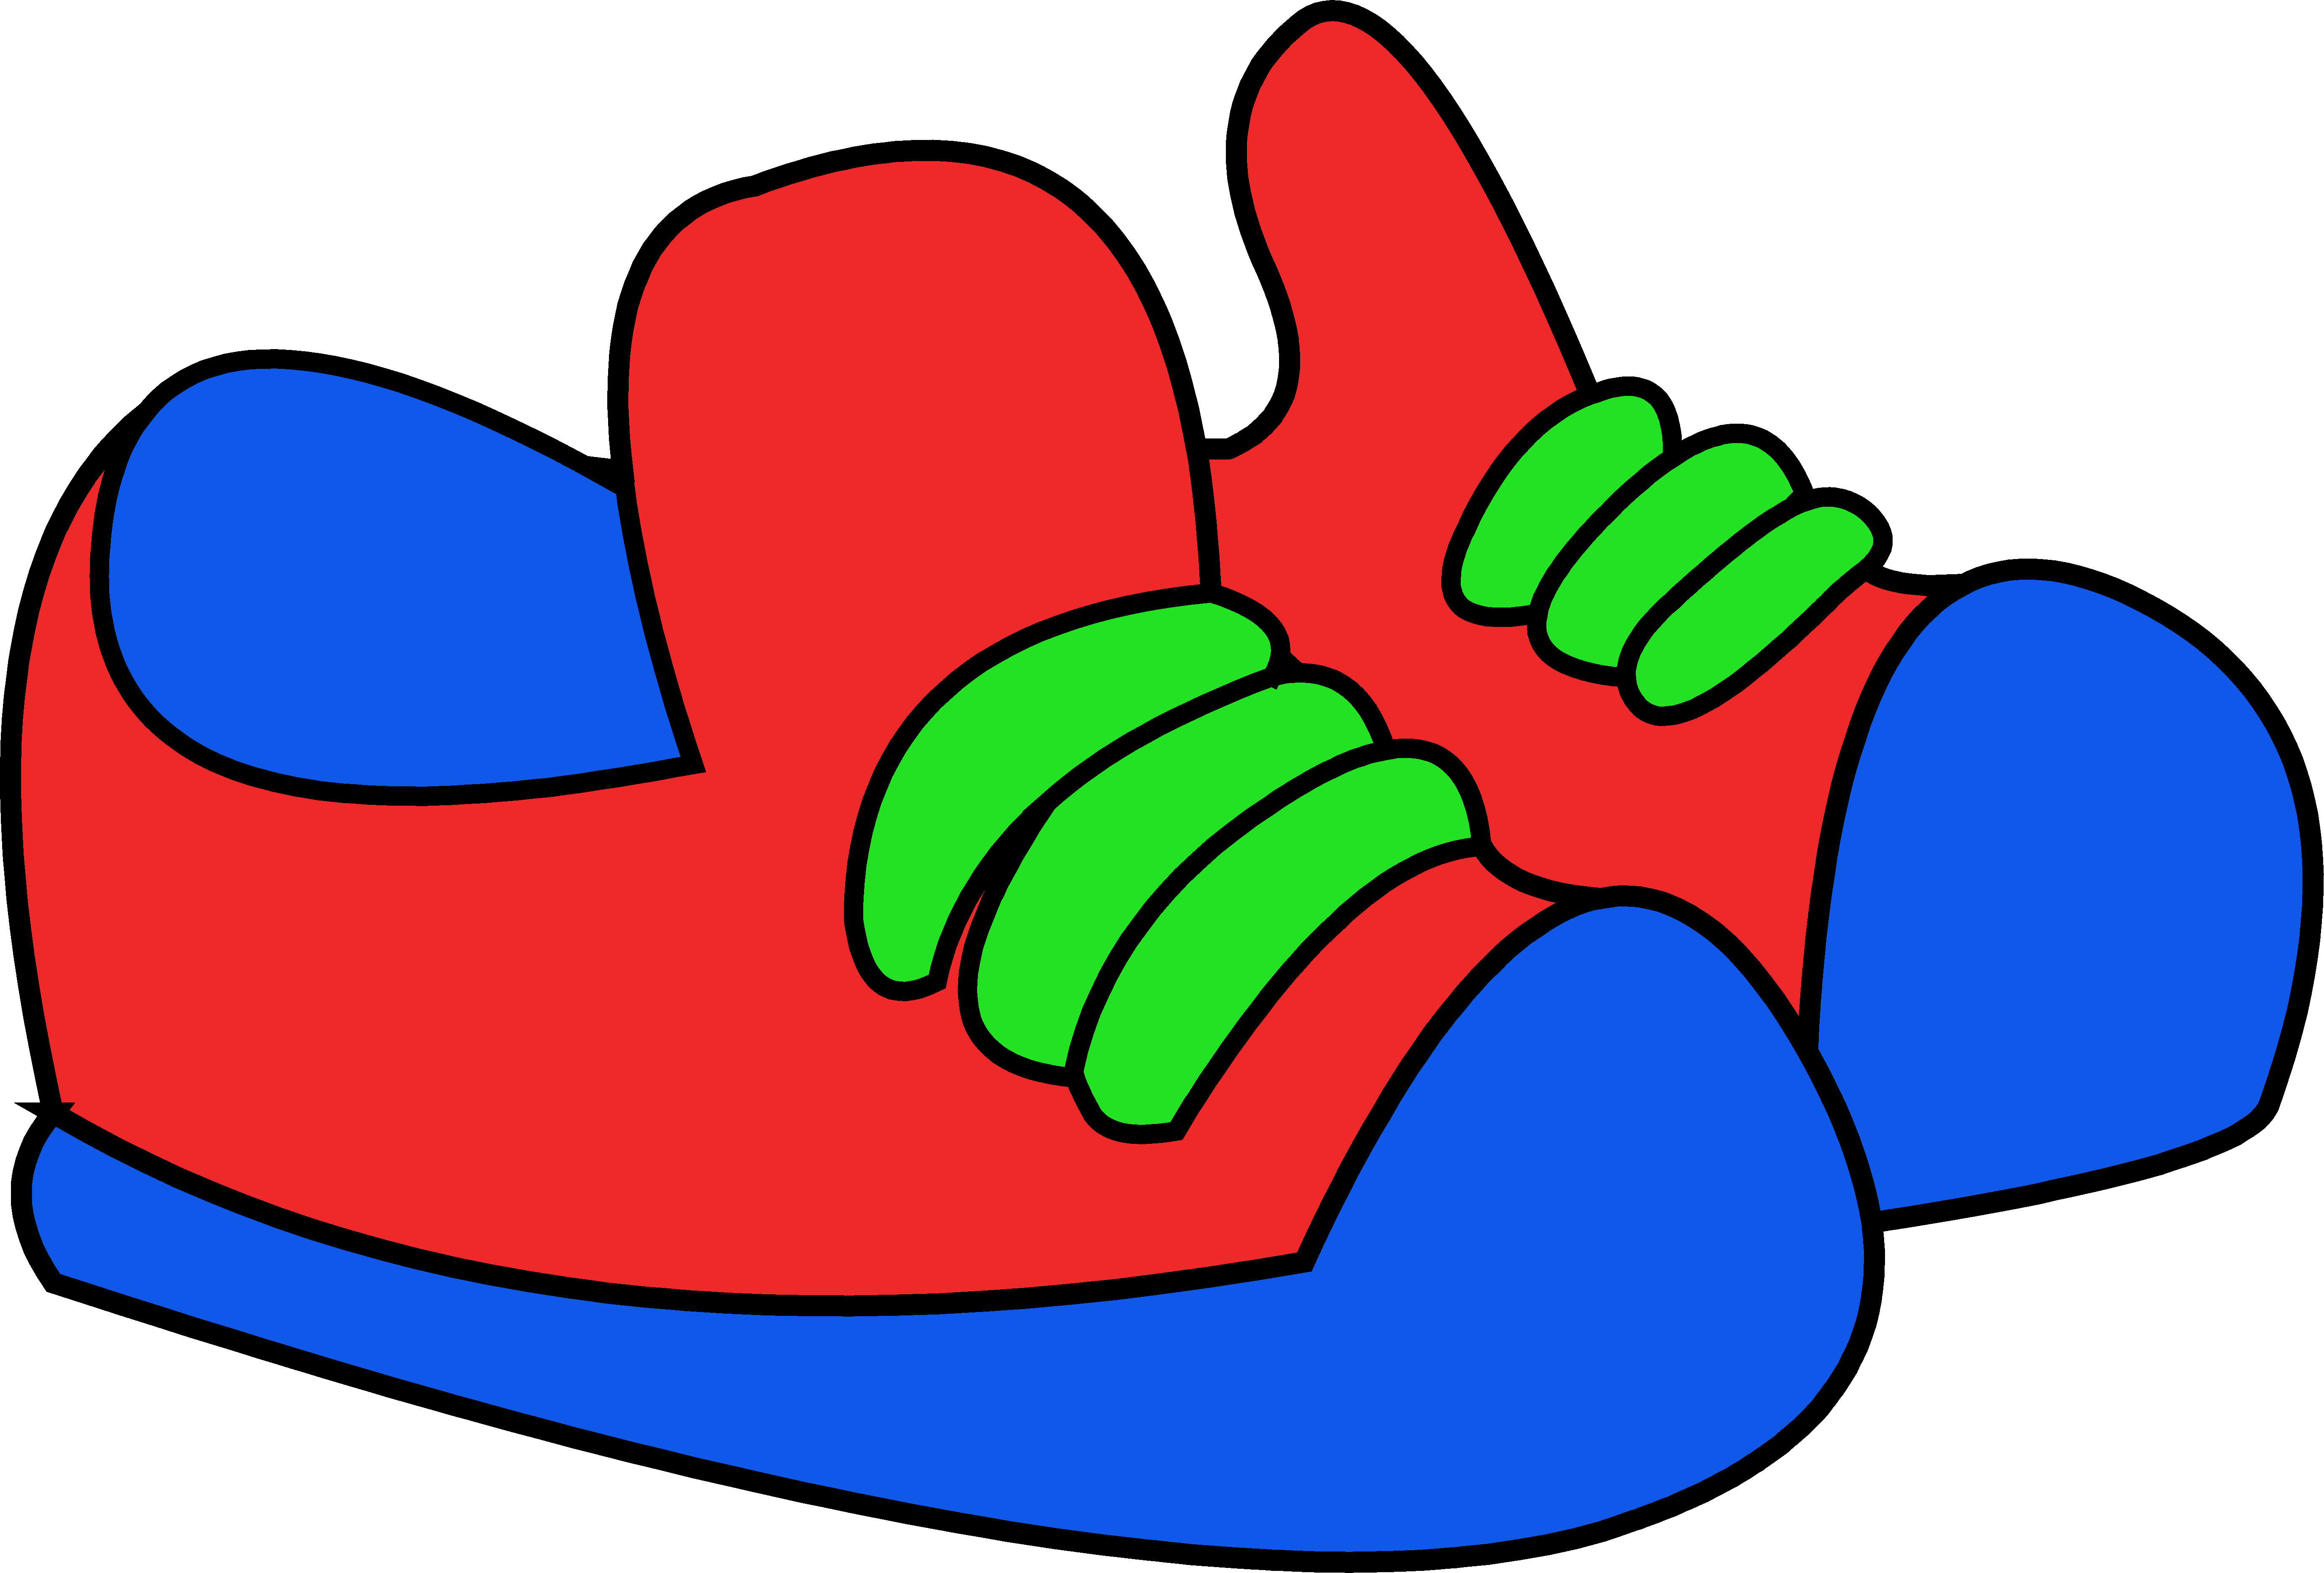 Free Cliparts Slippers, Download Free Clip Art, Free Clip.